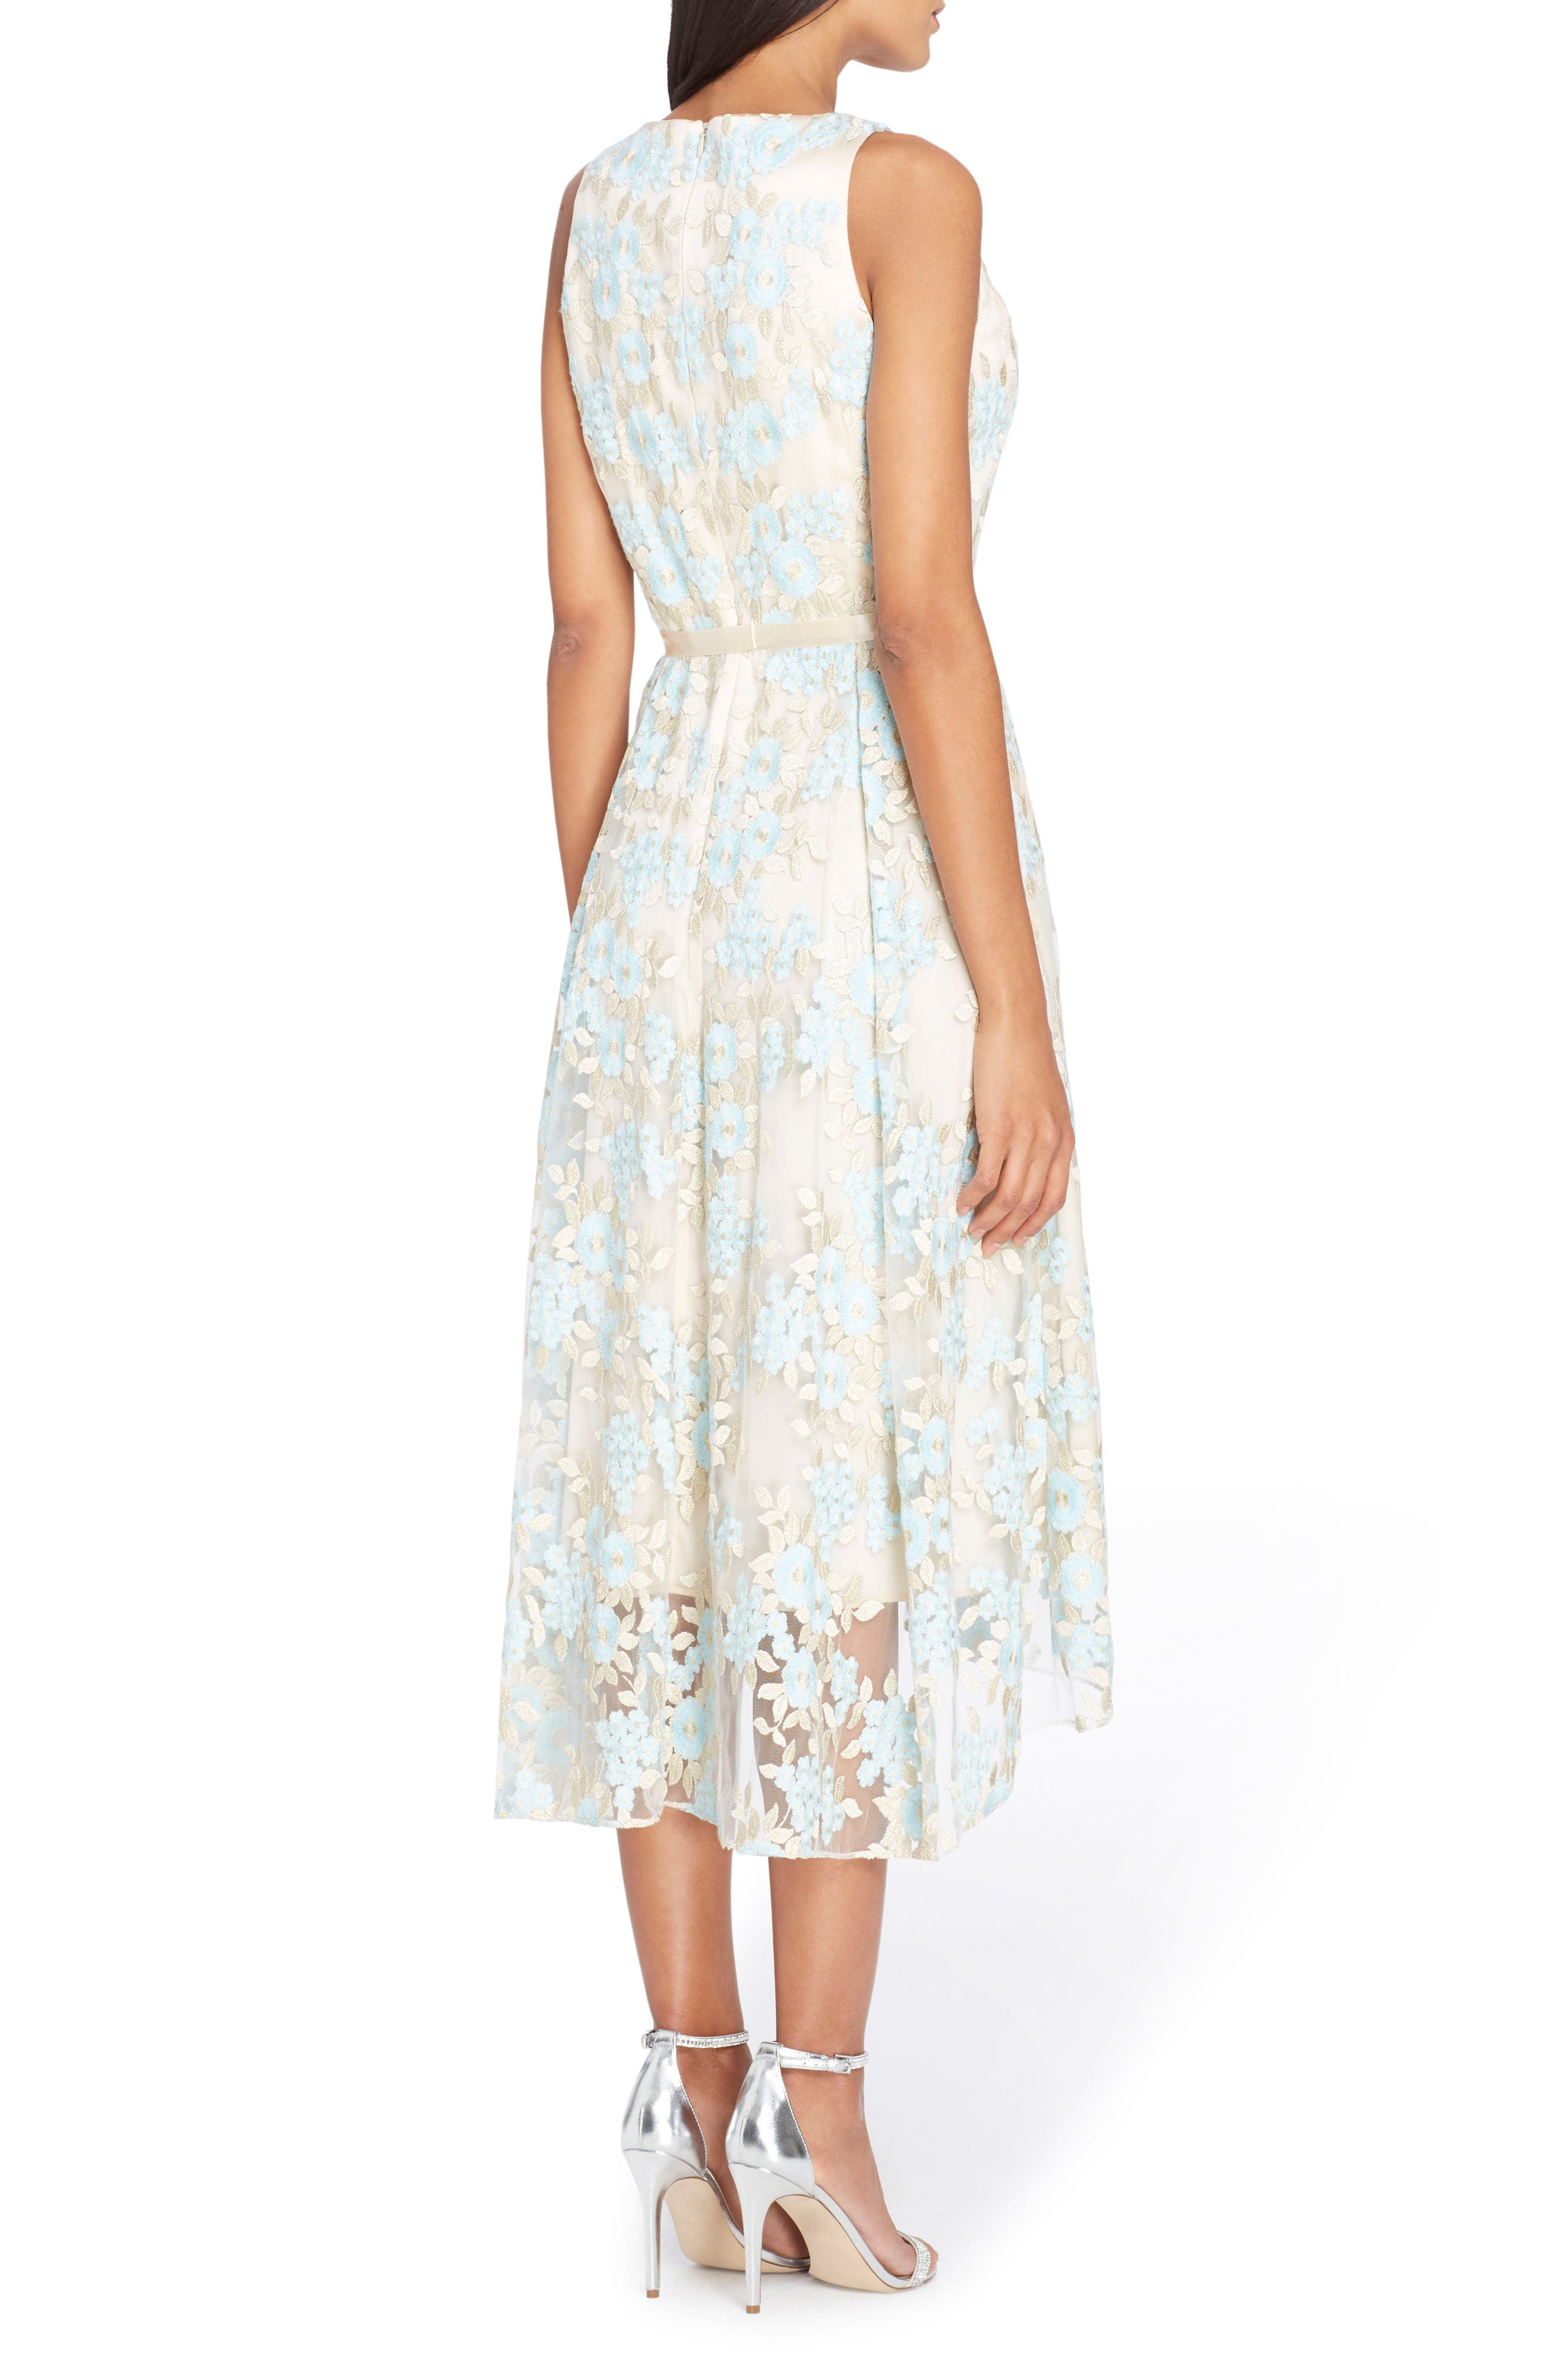 Floral Embroidered Dress,                             Alternate thumbnail 2, color,                             Nude/ Ice Blue/ Gold